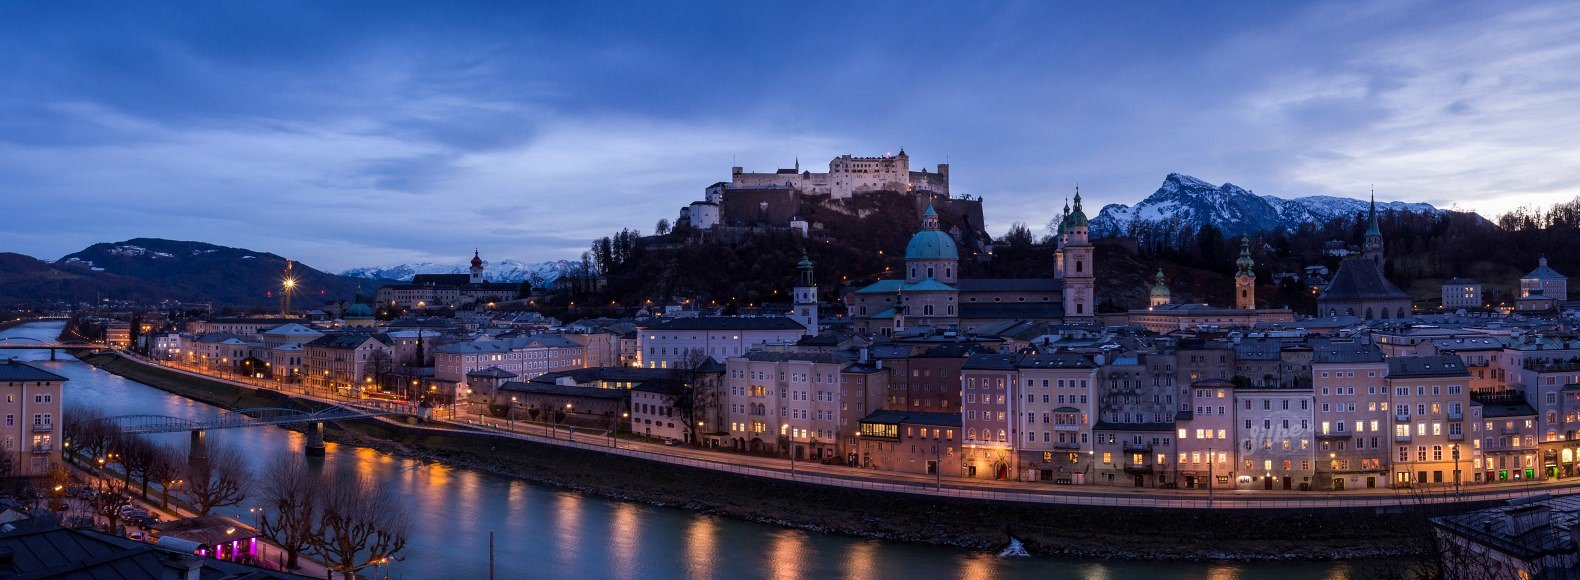 Day 45. - Cityscape from Salzburg.